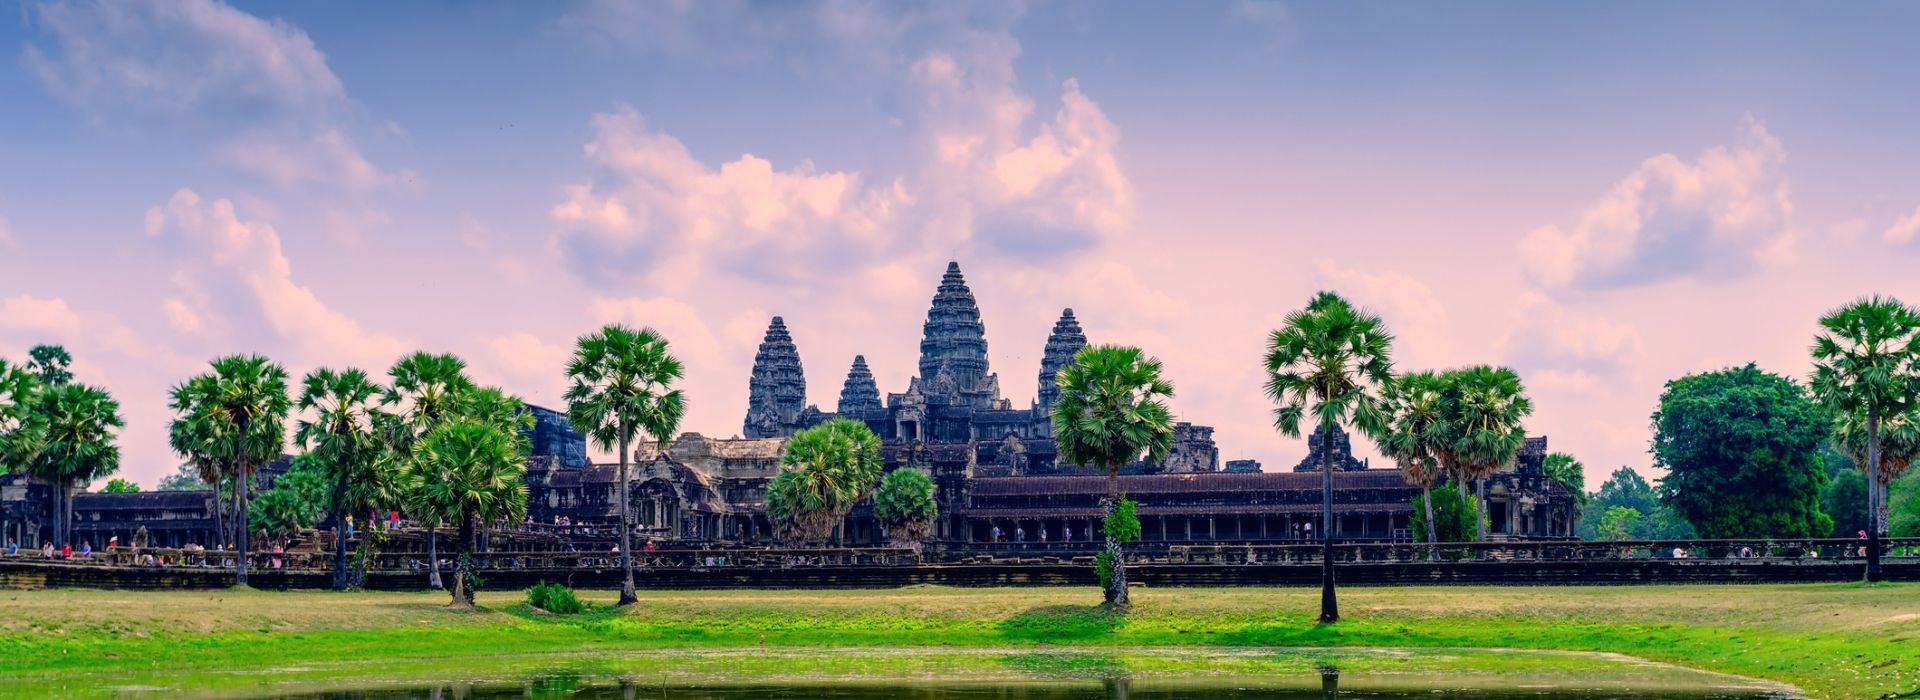 Sightseeing, attractions, culture and history Tours in Cambodia